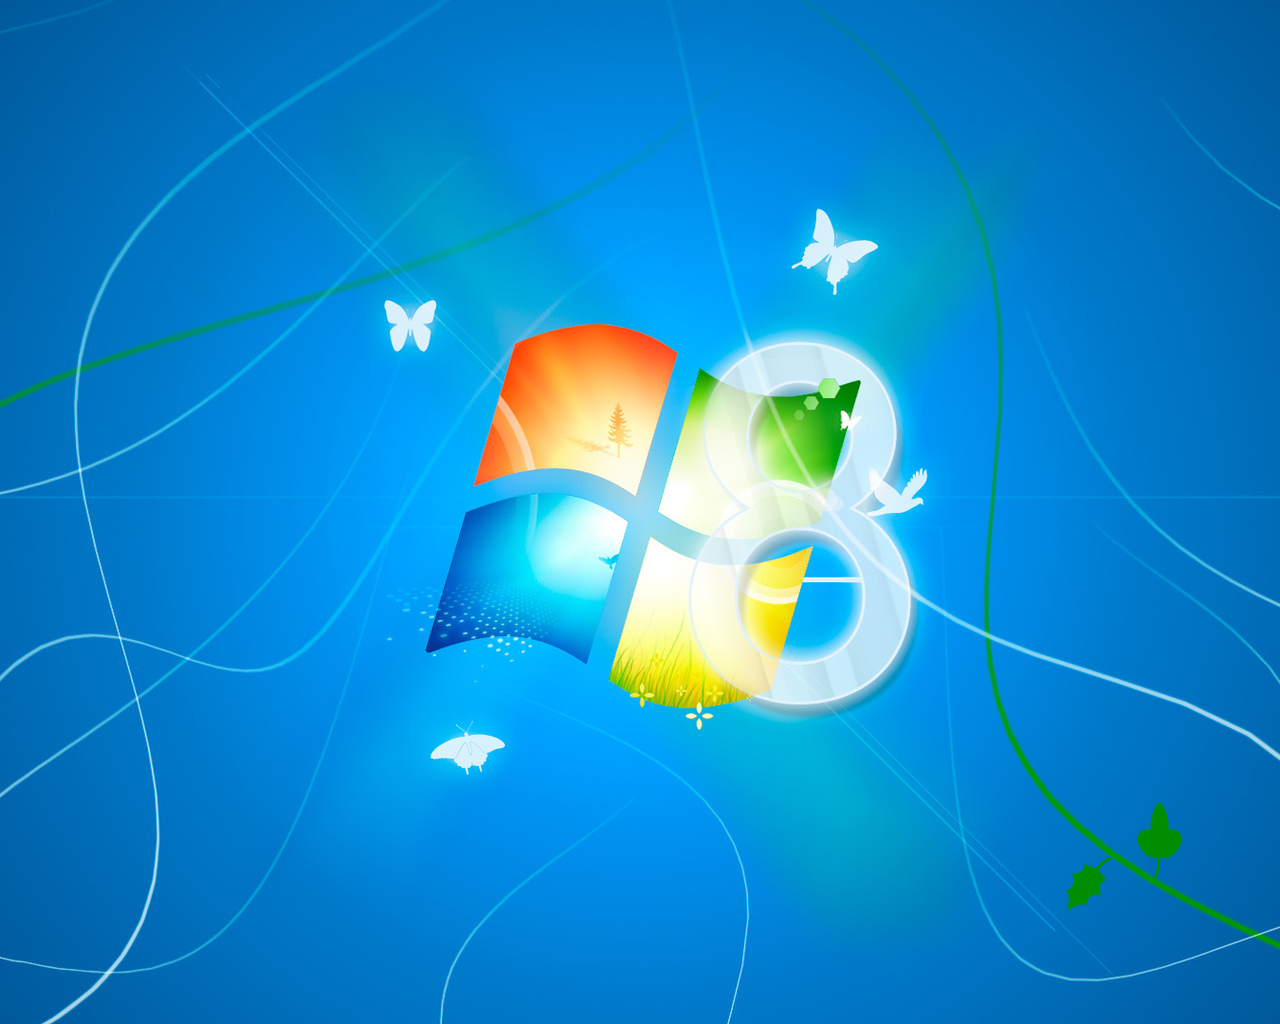 Microsoft ос логотип синий фон windows 8 обои